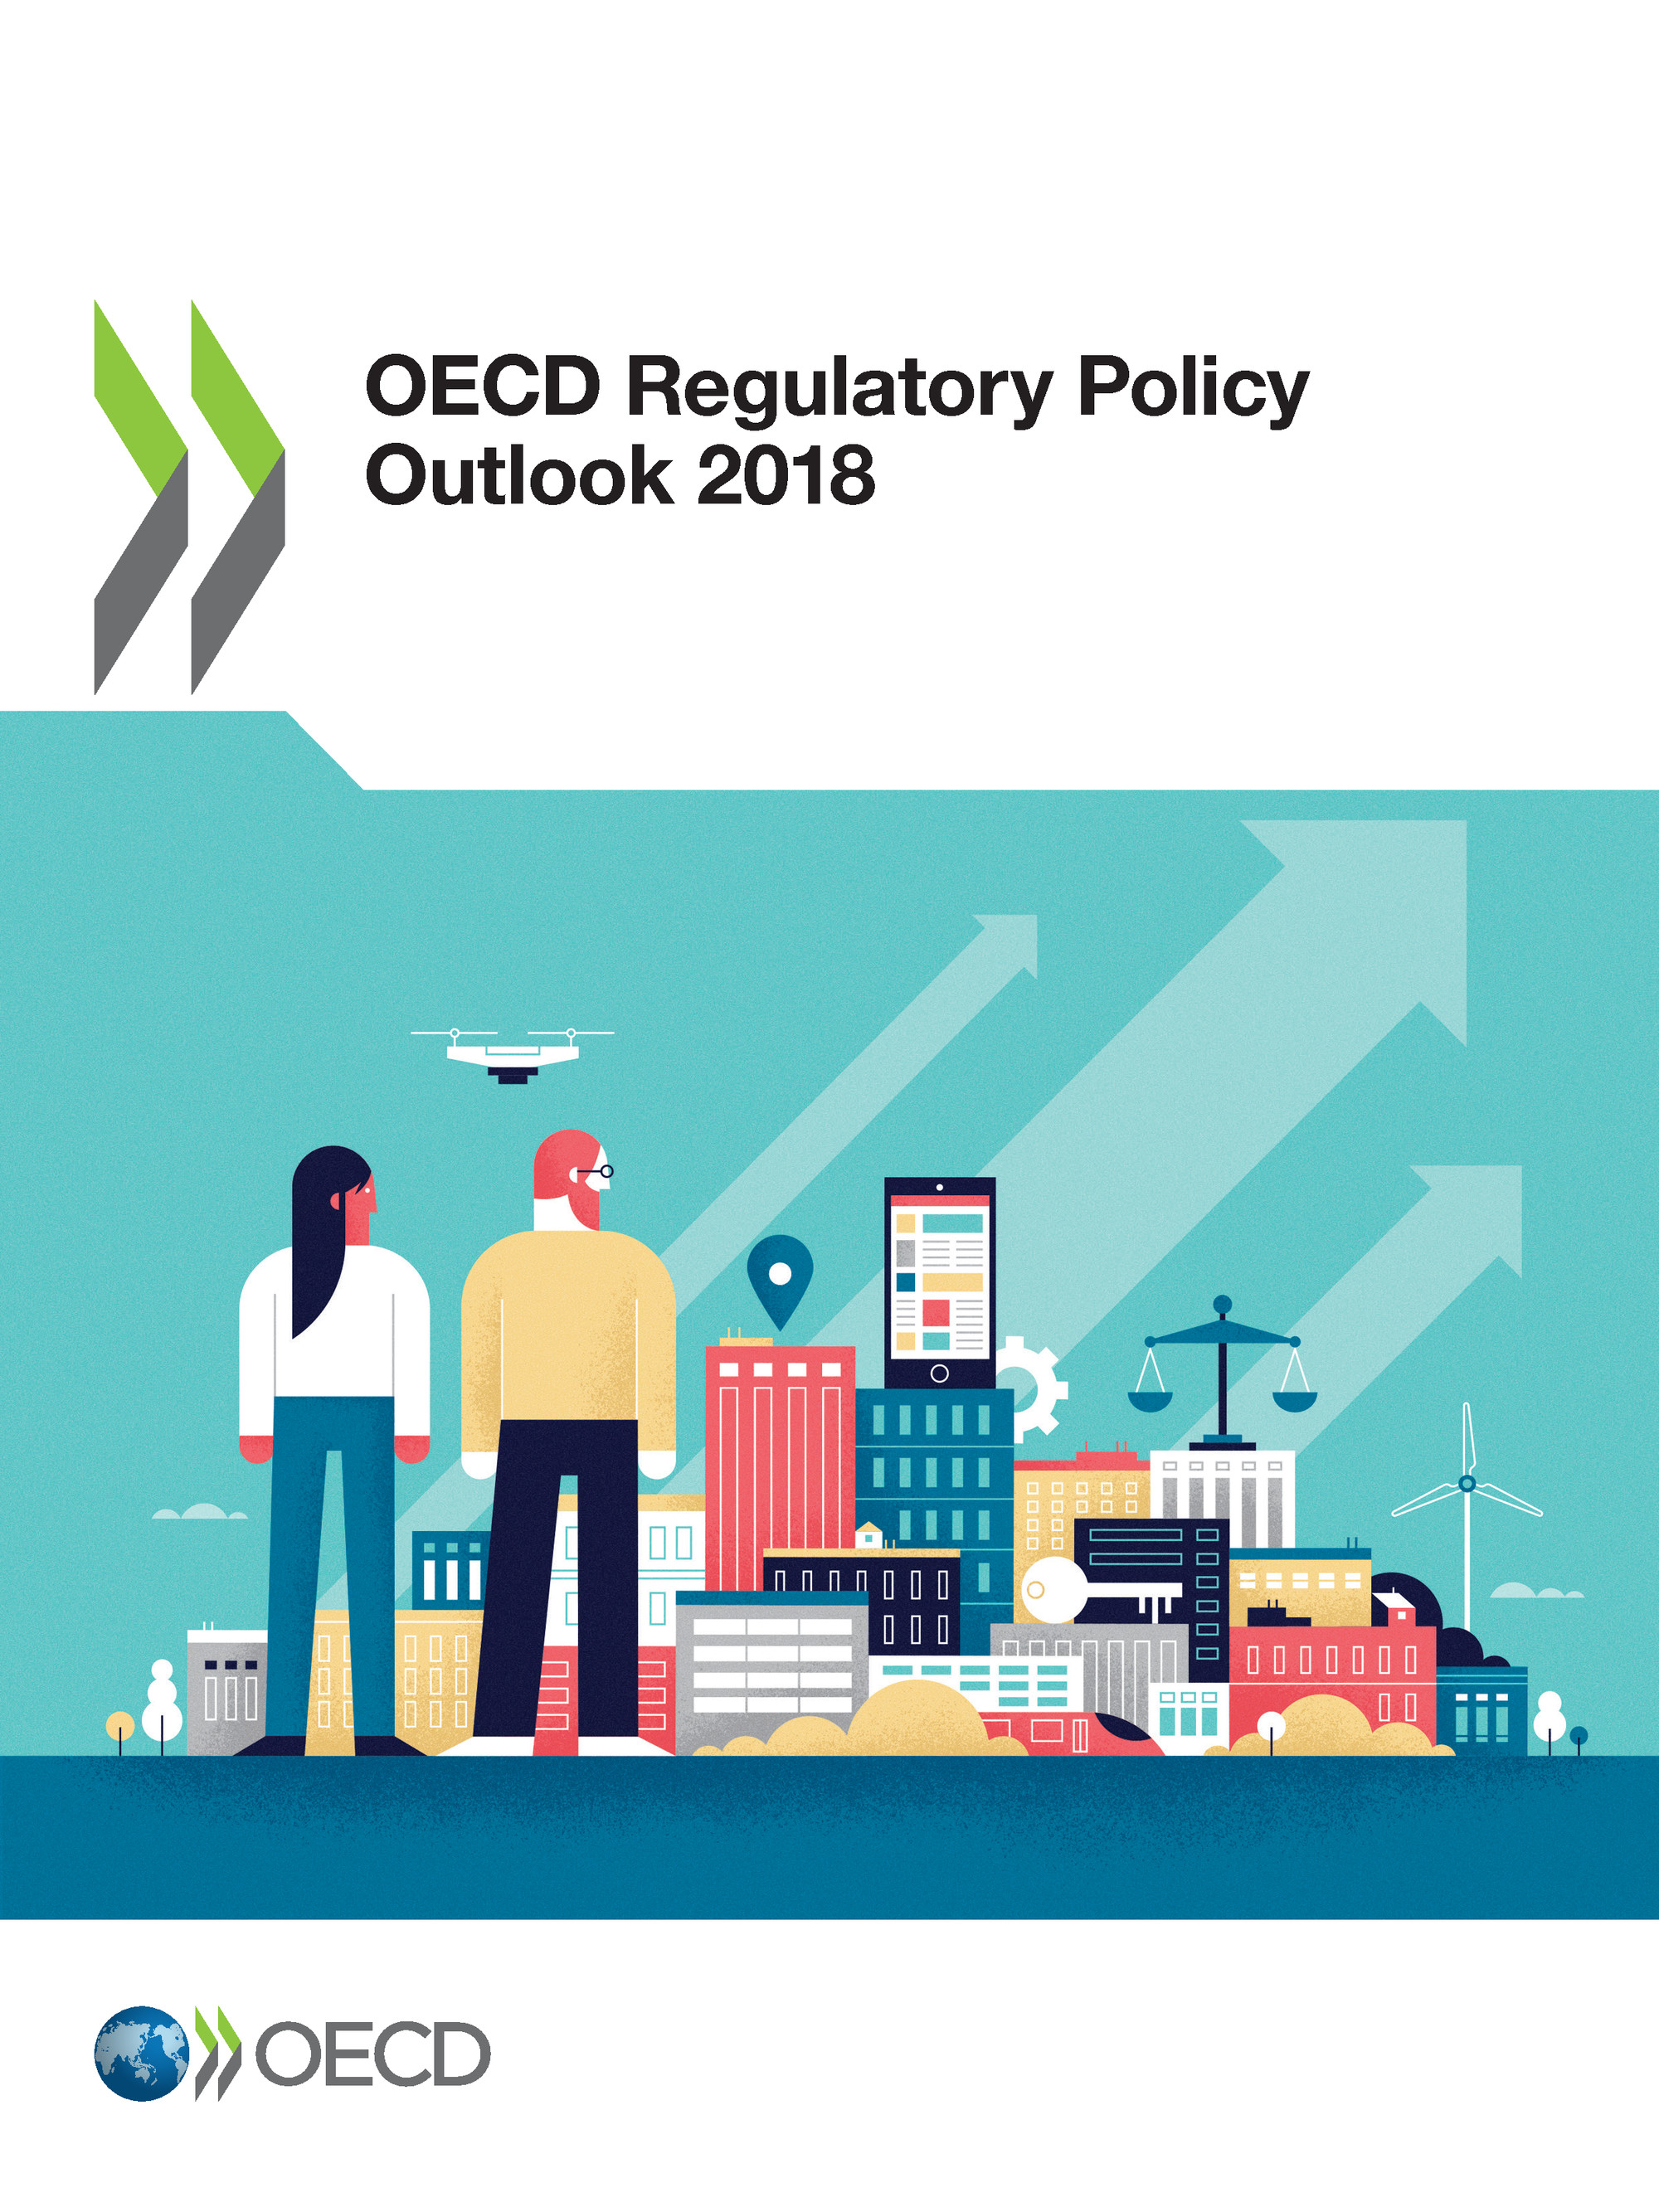 OECD Regulatory Policy Outlook 2018 De  Collectif - OCDE / OECD